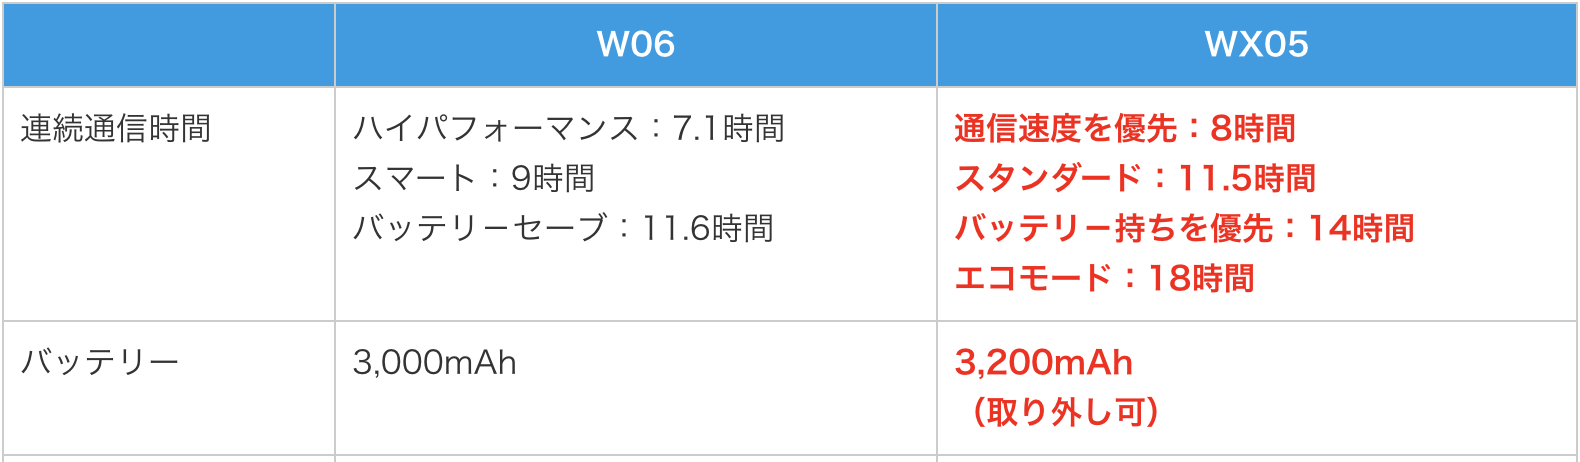 W06 デメリット